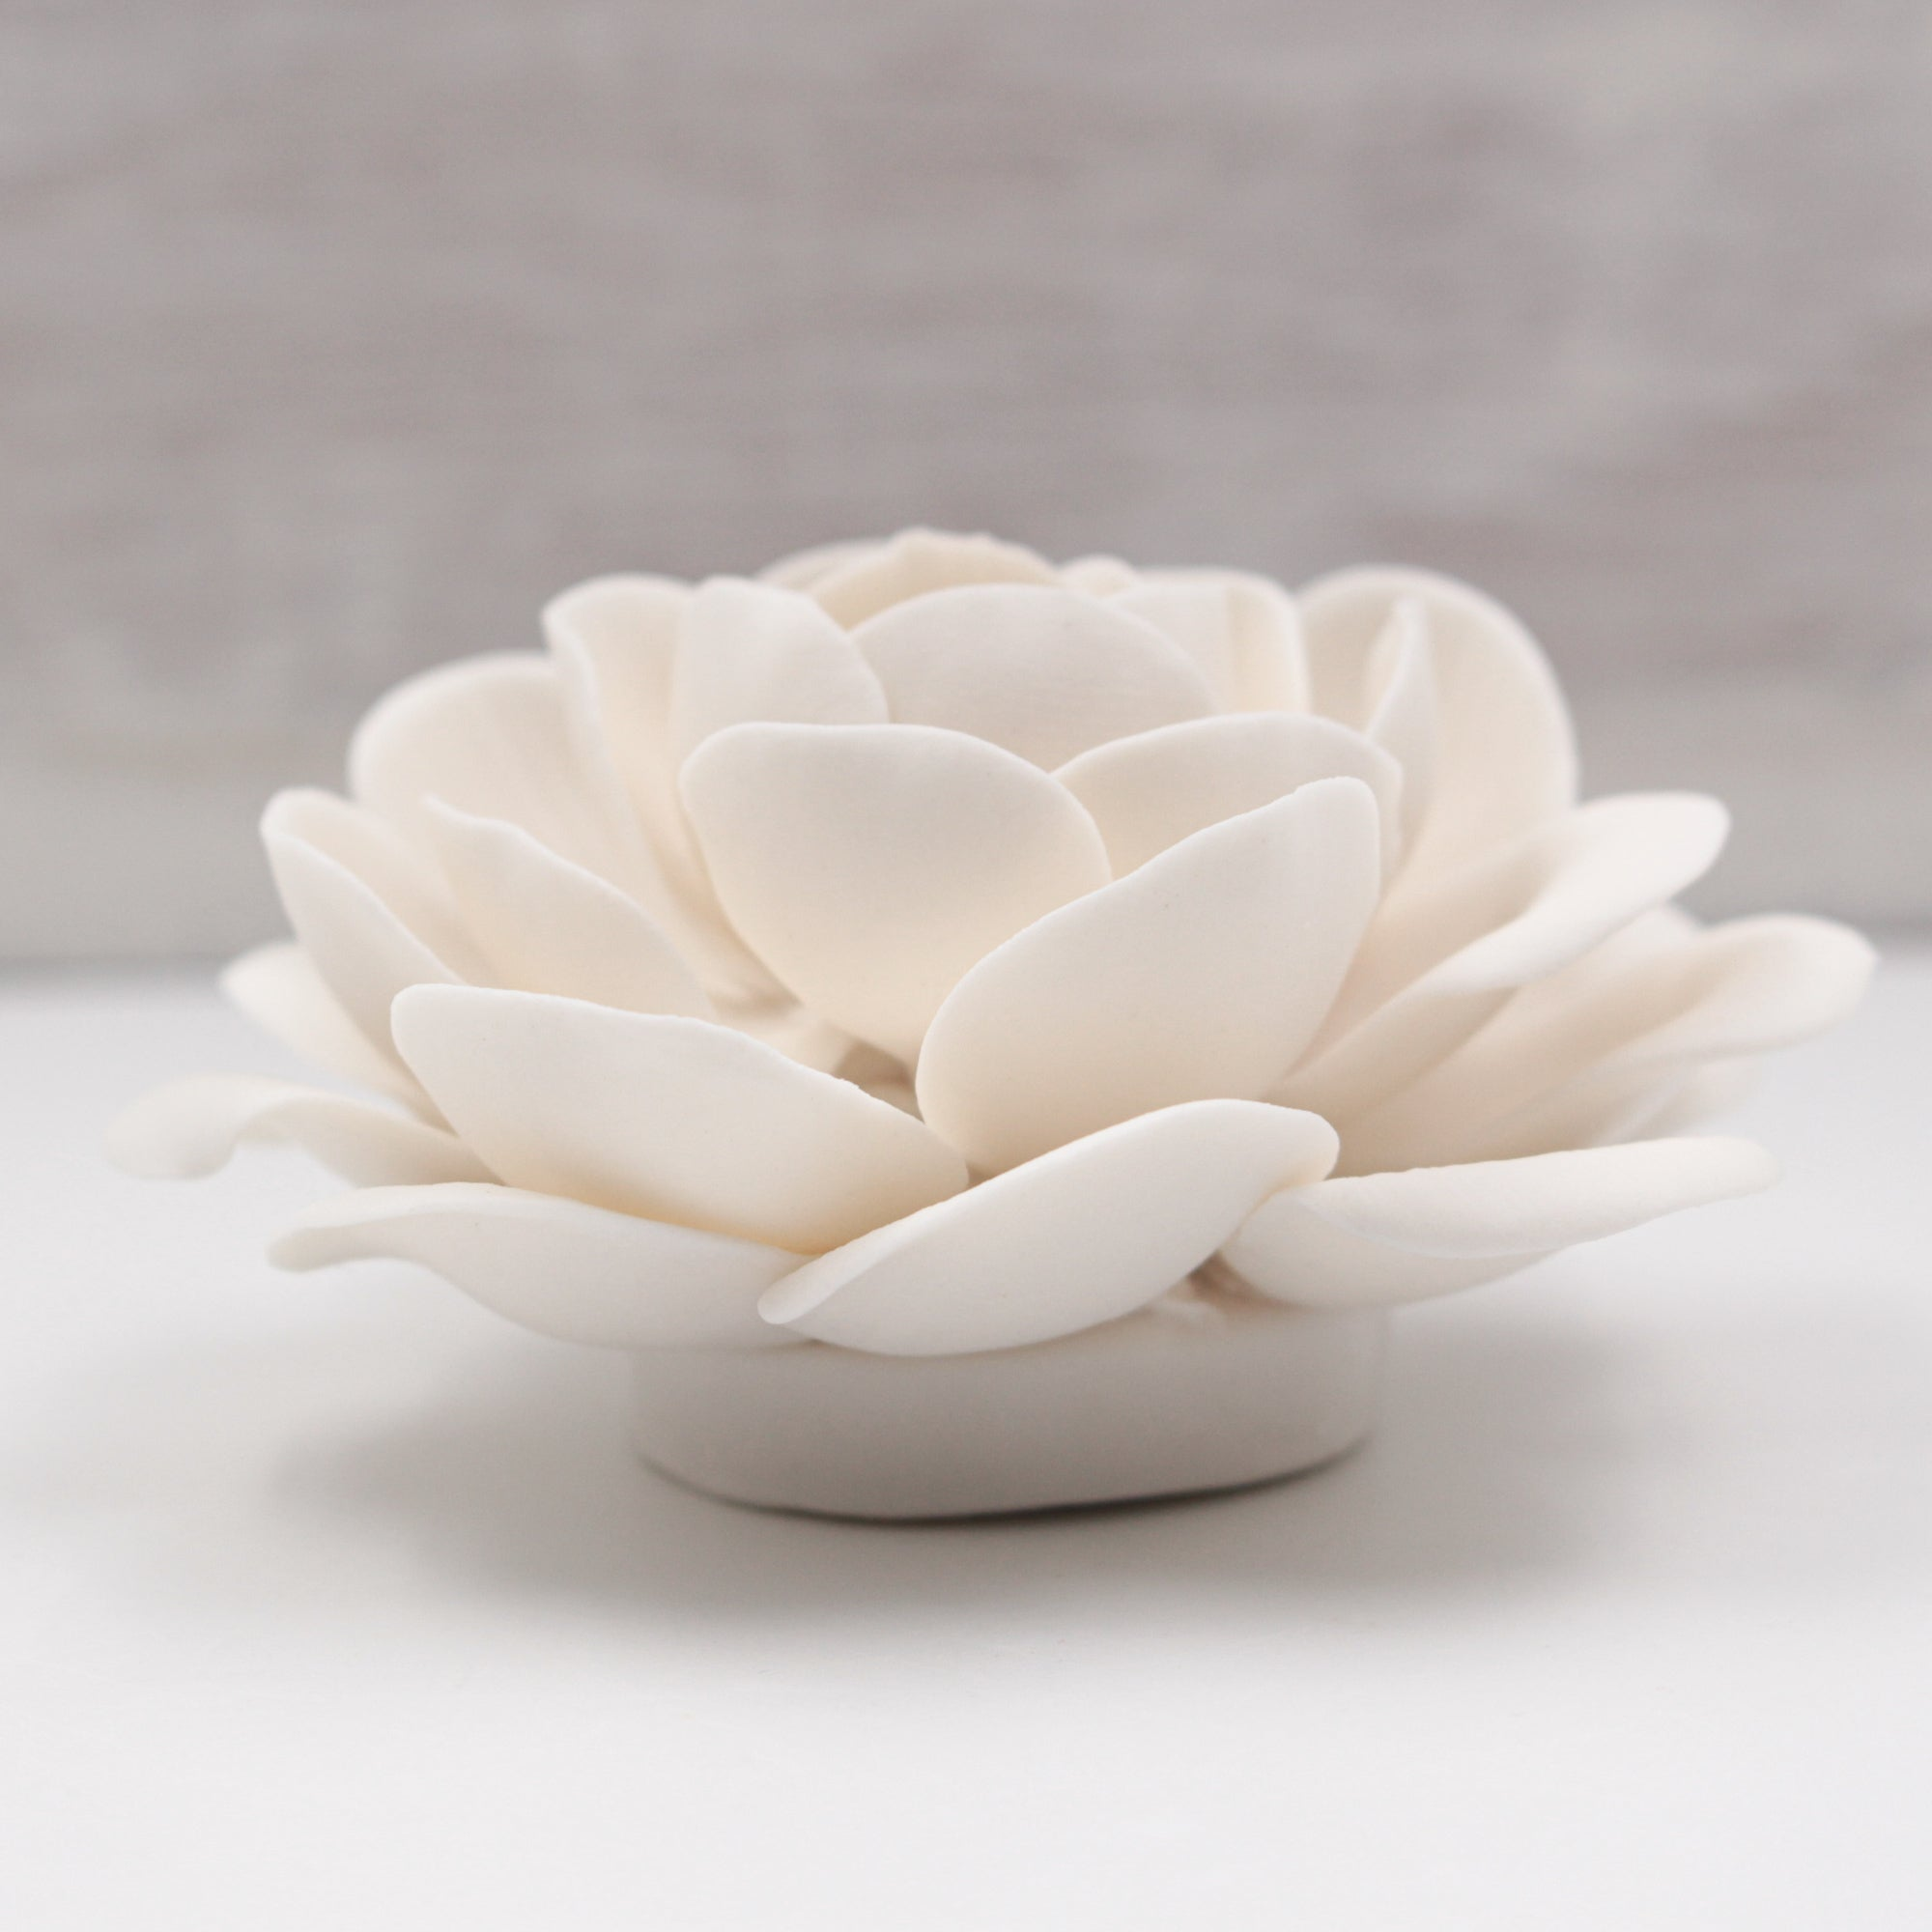 Small Porcelain Camellia - Handmade Porcelain Flower for Interior and Event Decoration - Made in France by Alain Granell – Home and Wall Decoration